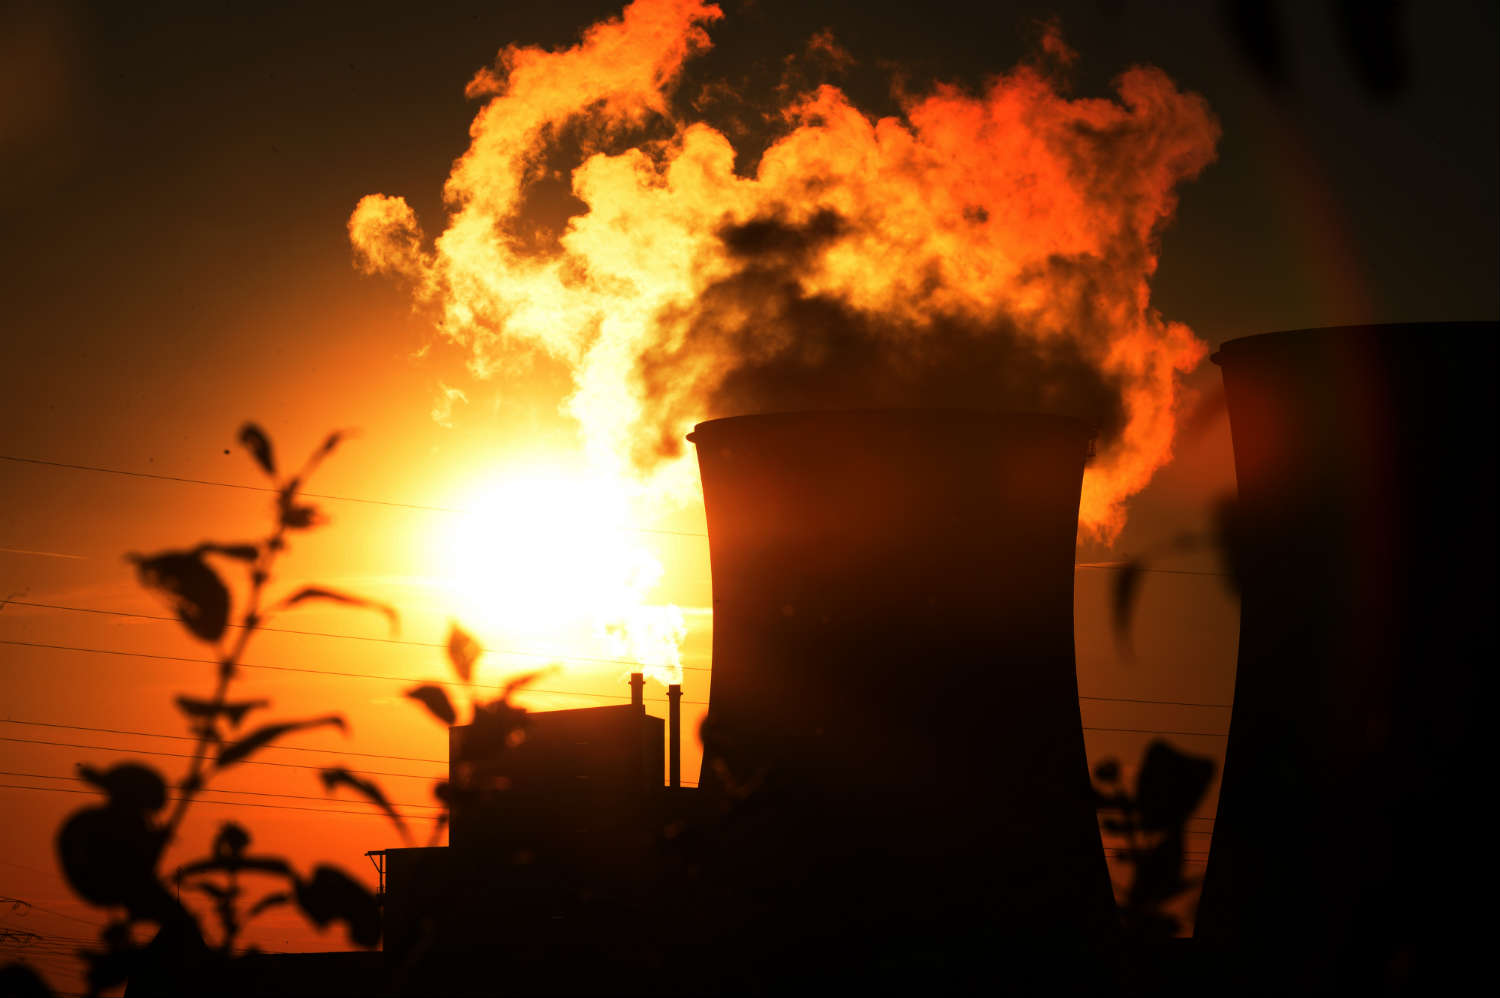 If tough climate regulations are enforced, fossil fuel companies could see their bubble burst